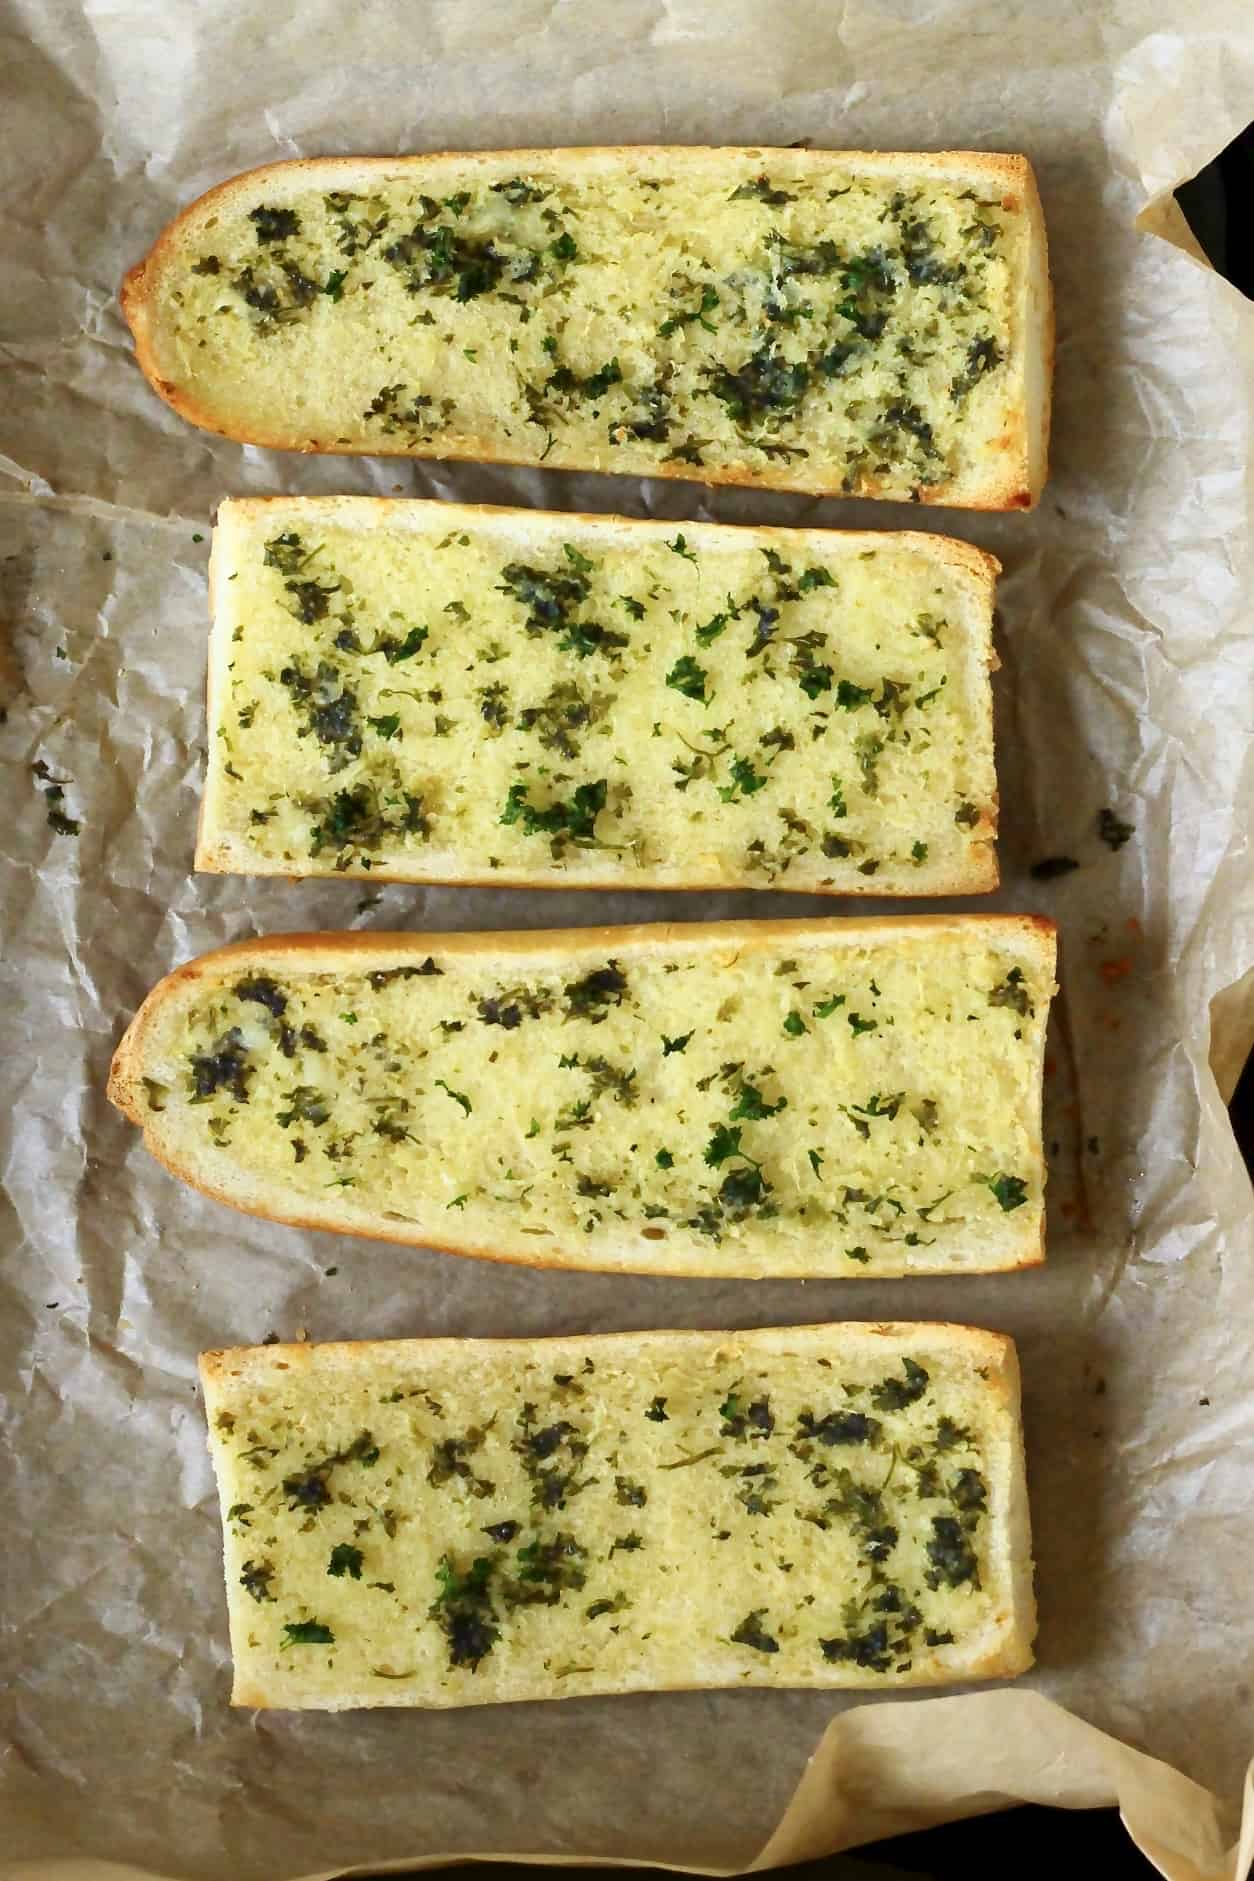 Four pieces of garlic bread on a sheet of brown baking paper